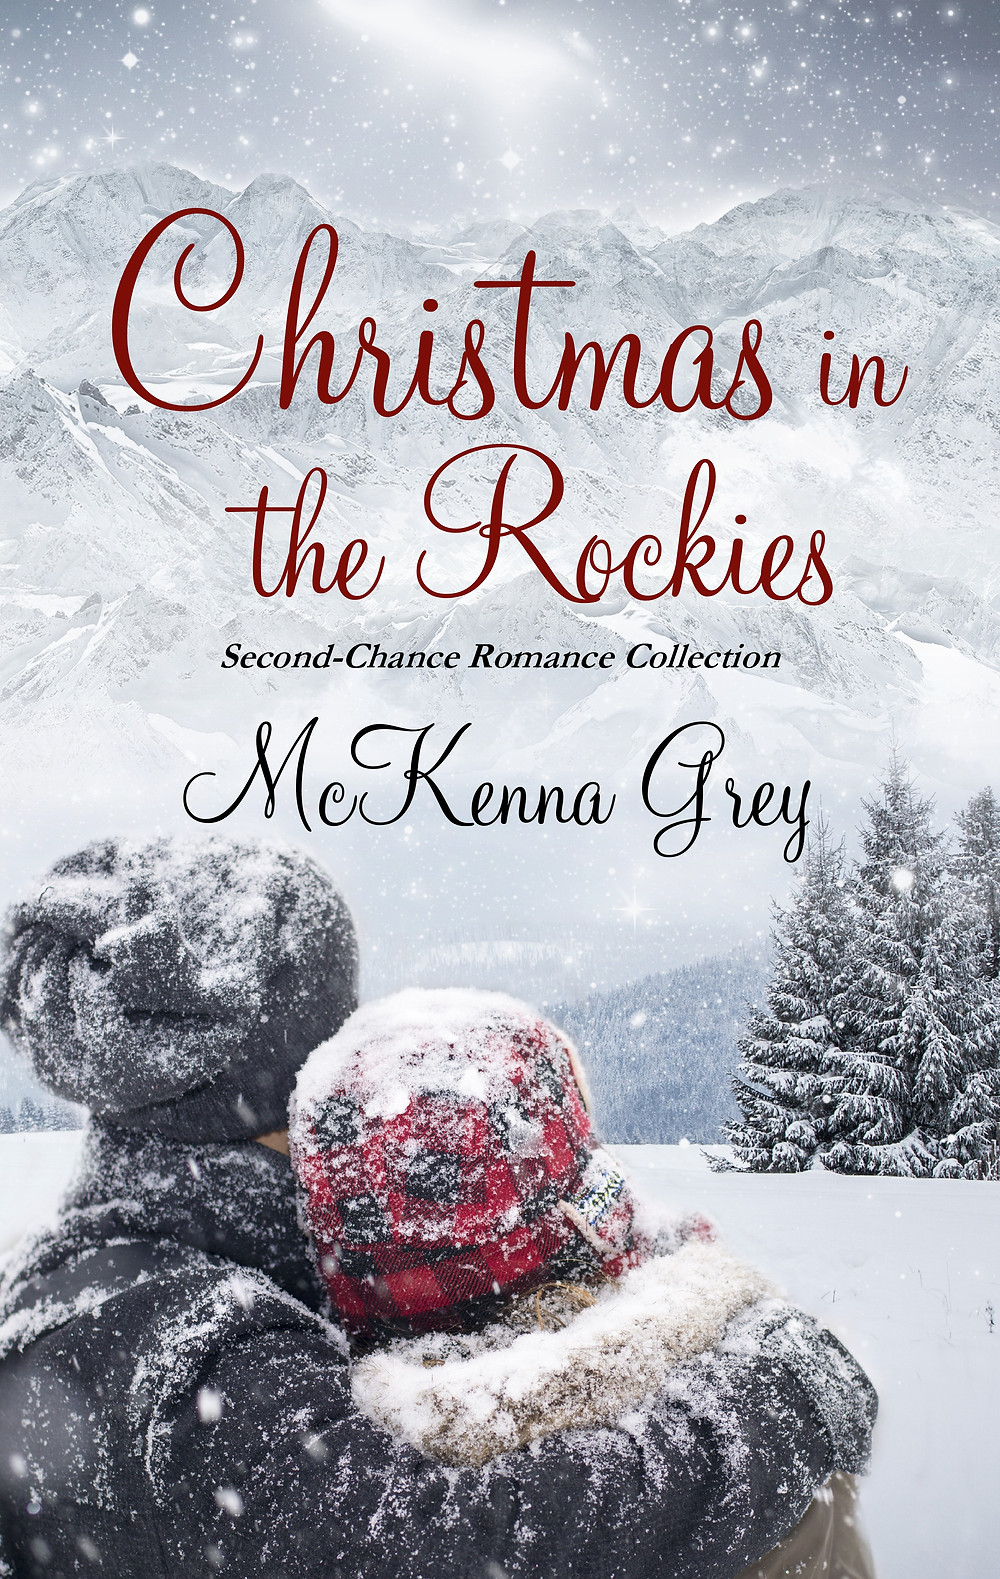 Christmas in the Rockies by McKenna Grey